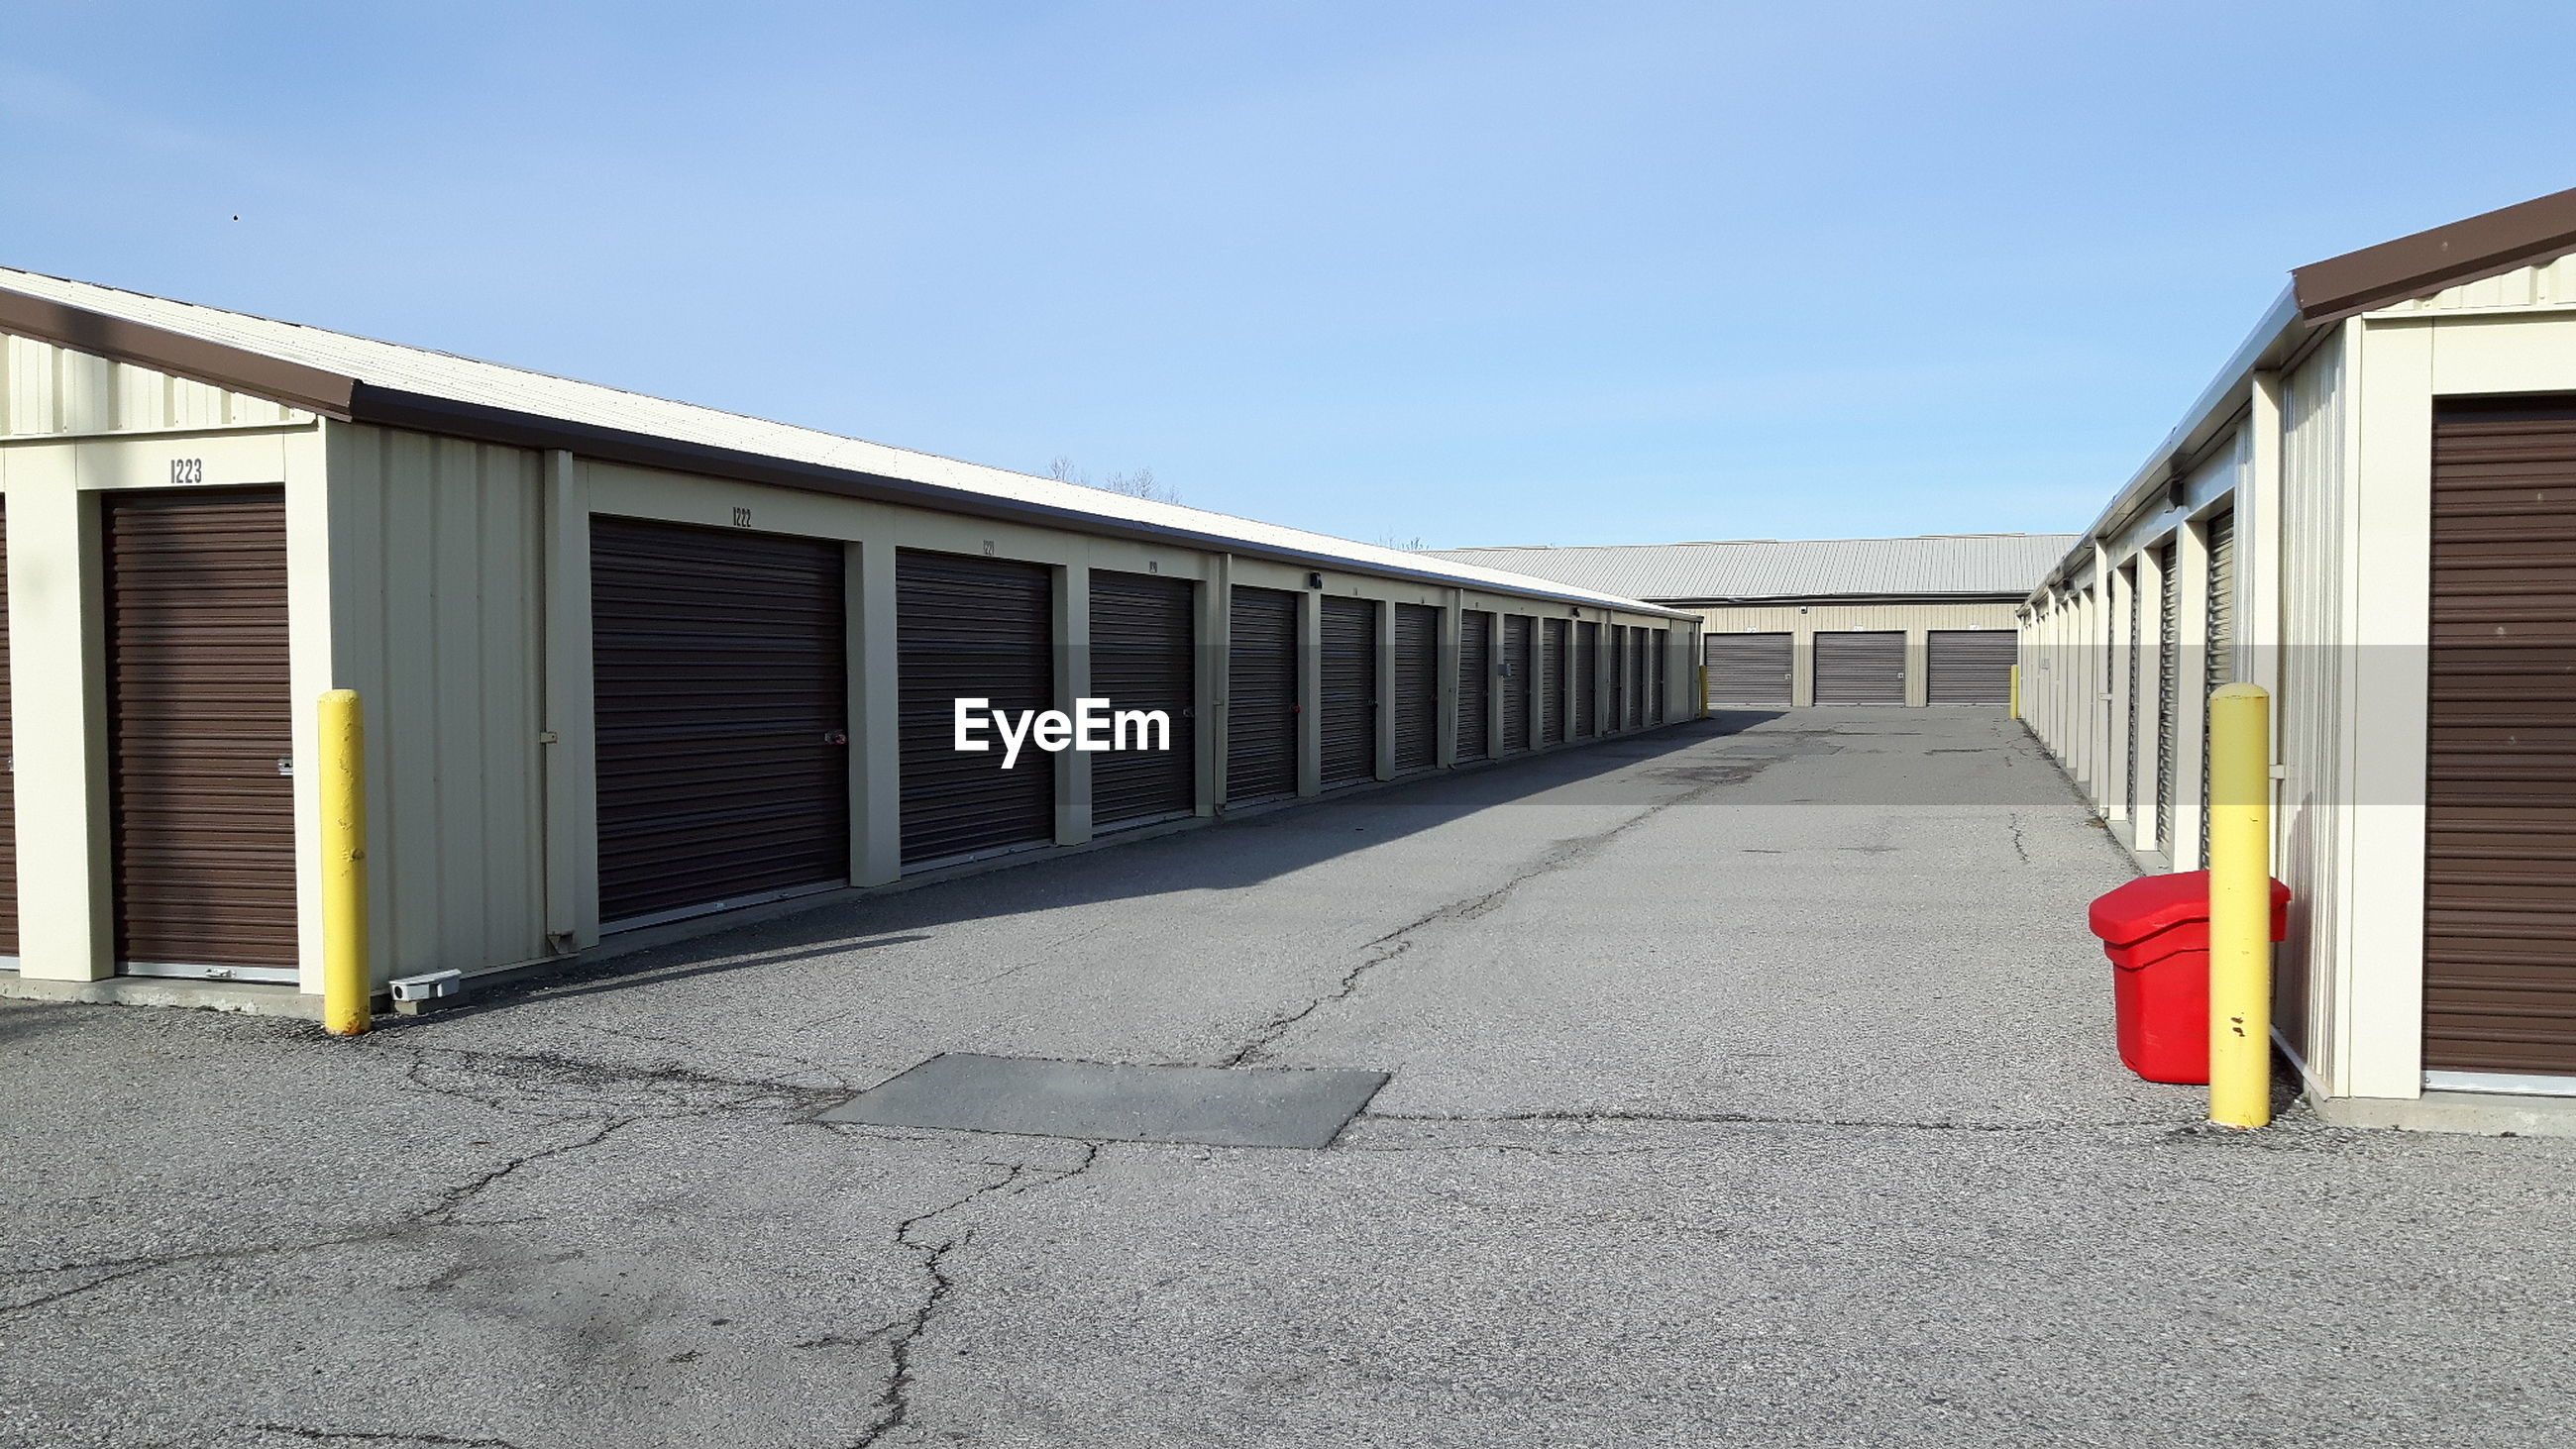 Exterior of warehouses against clear sky